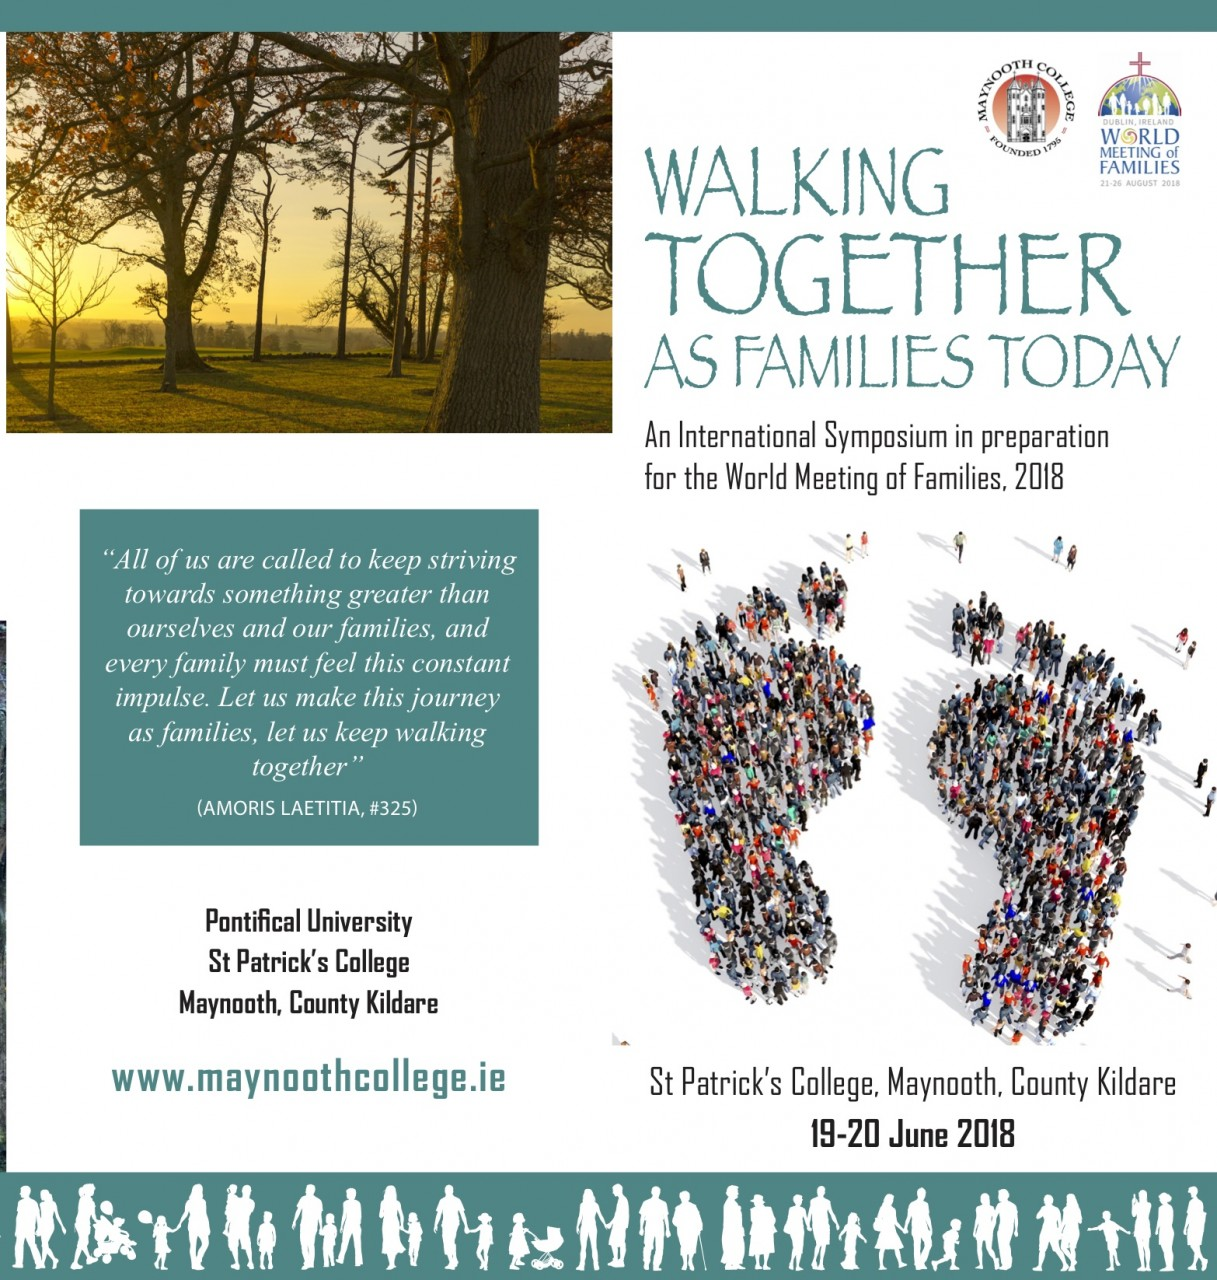 WALKING TOGETHER AS FAMILIES TODAY - 